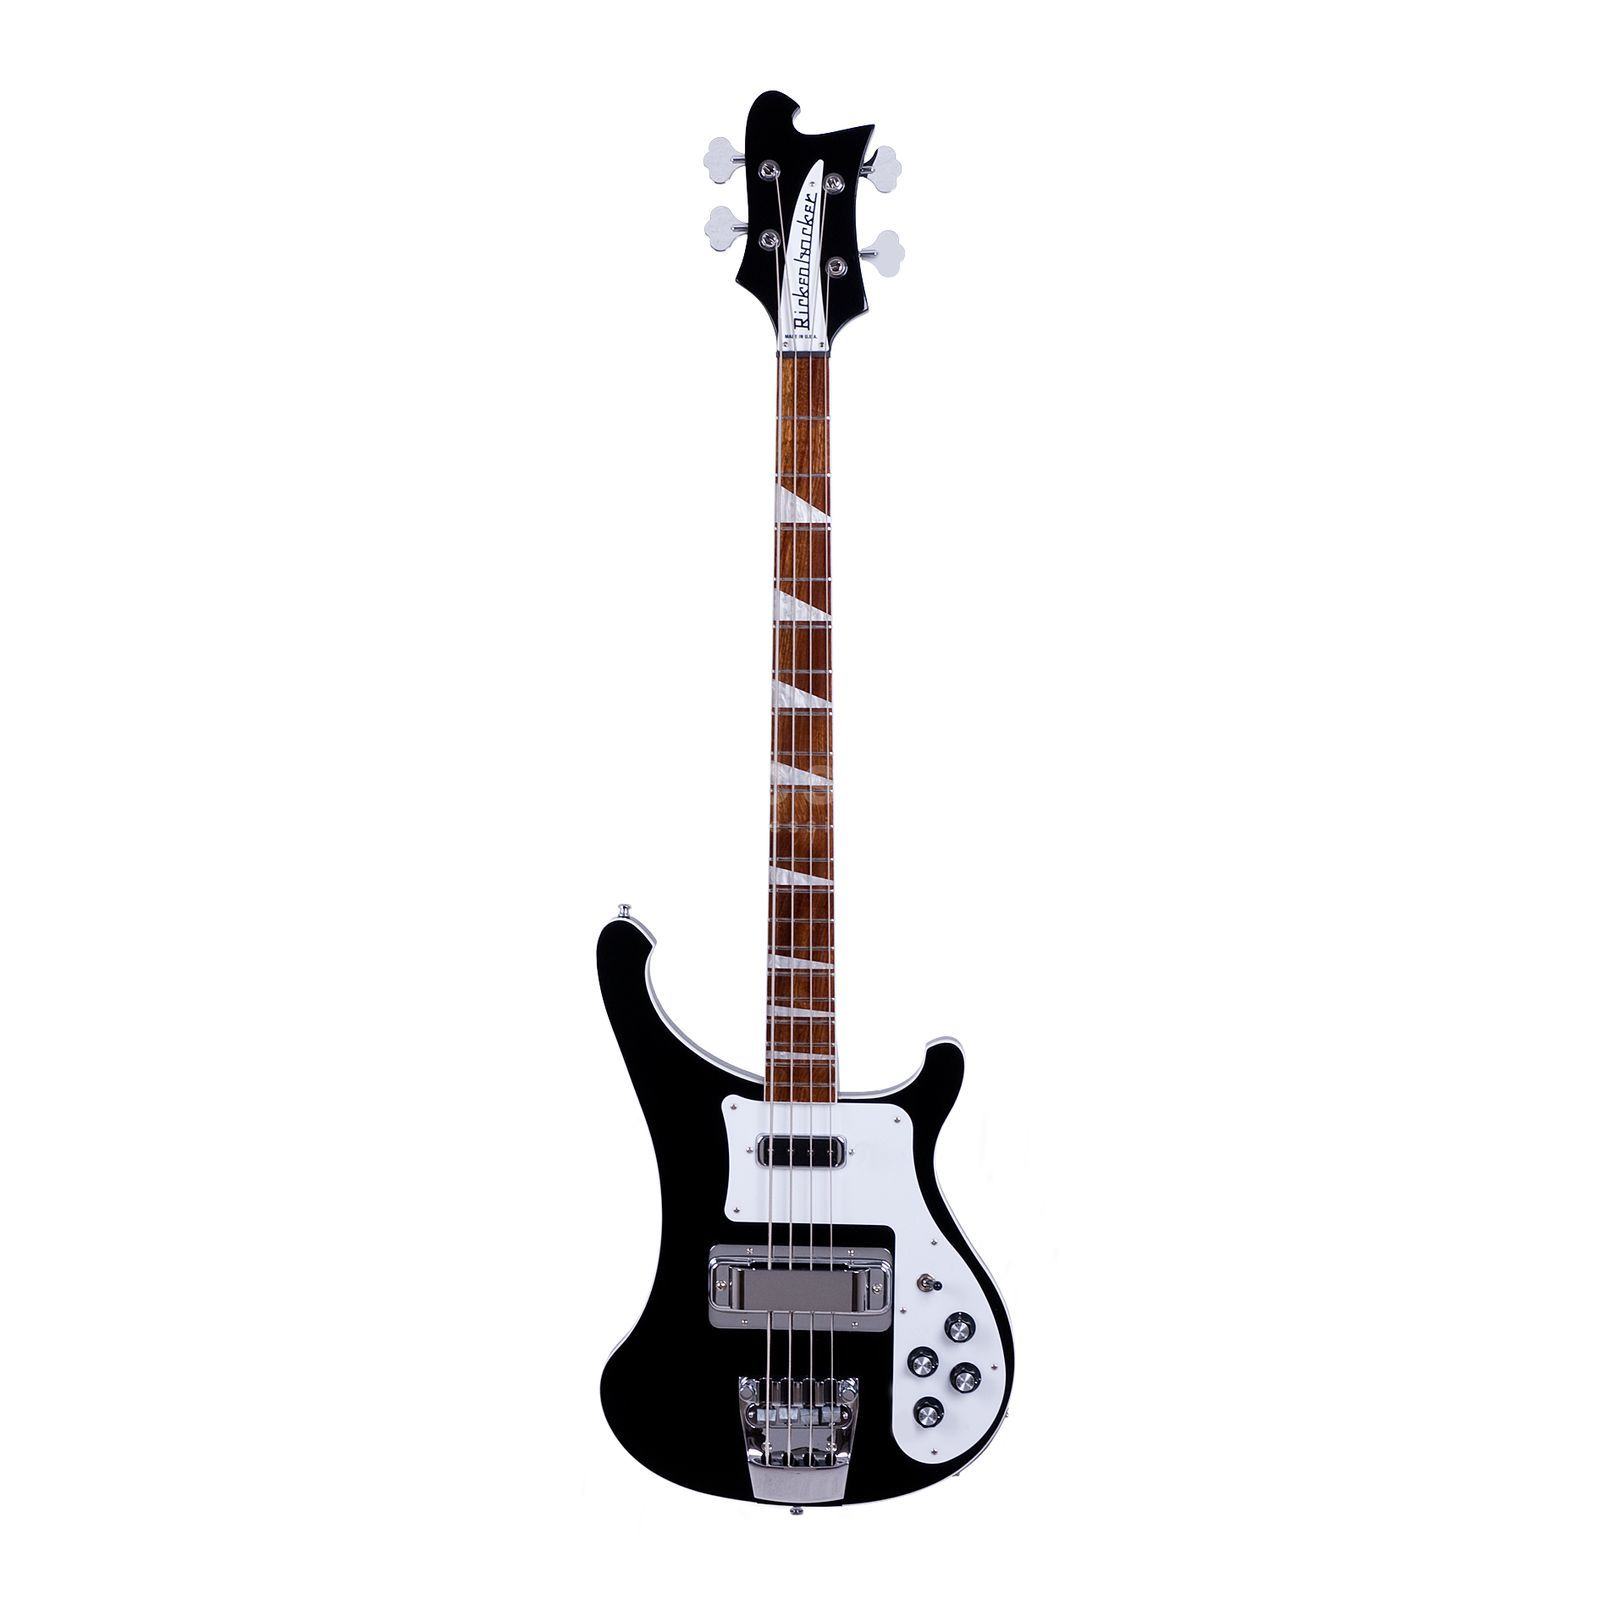 Rickenbacker 4003 Bass Guitar, Jetglo    Product Image